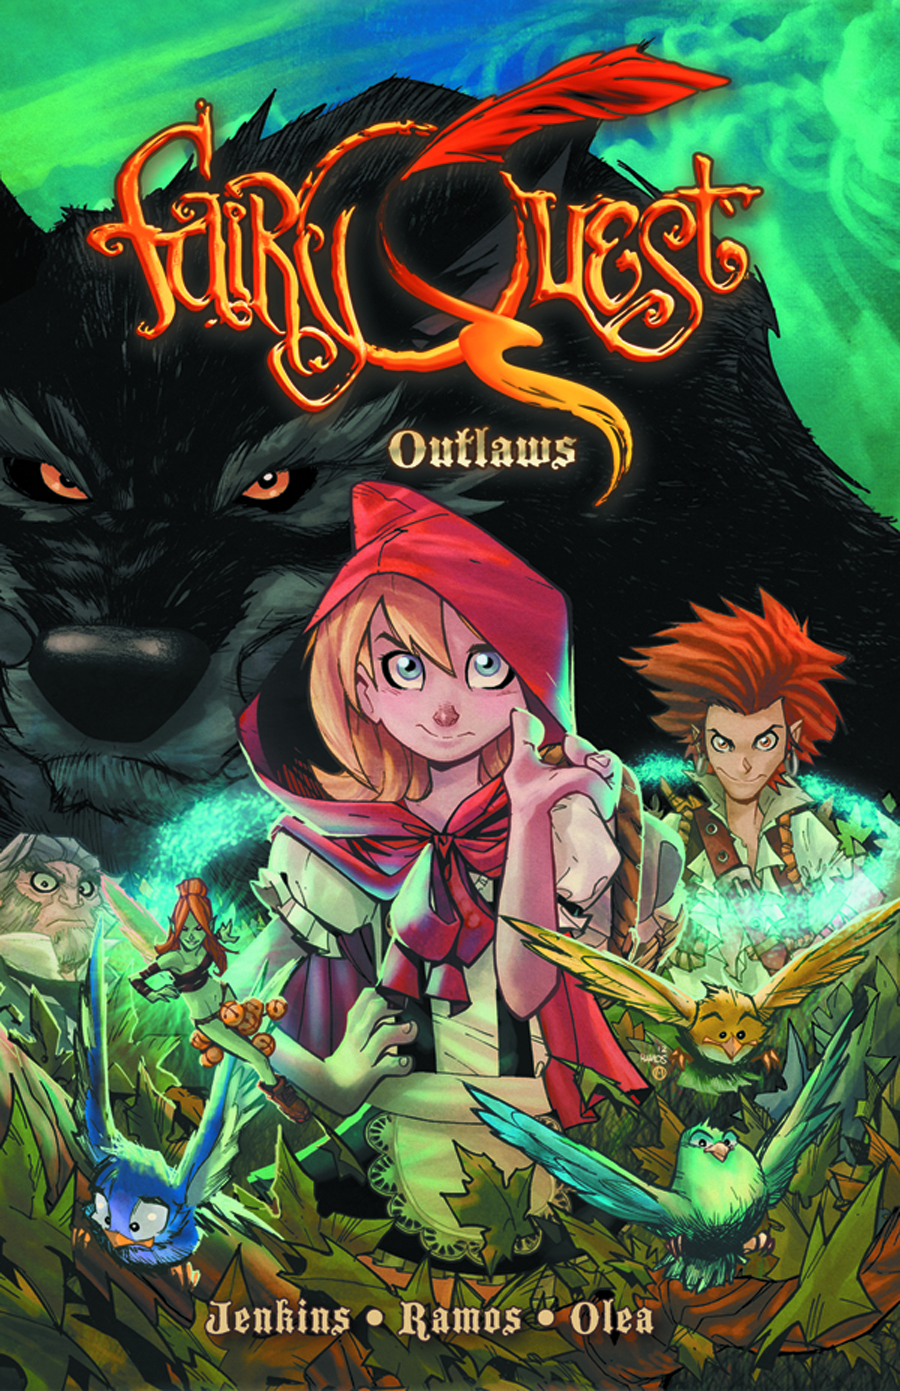 FAIRY QUEST TP VOL 01 OUTLAWS